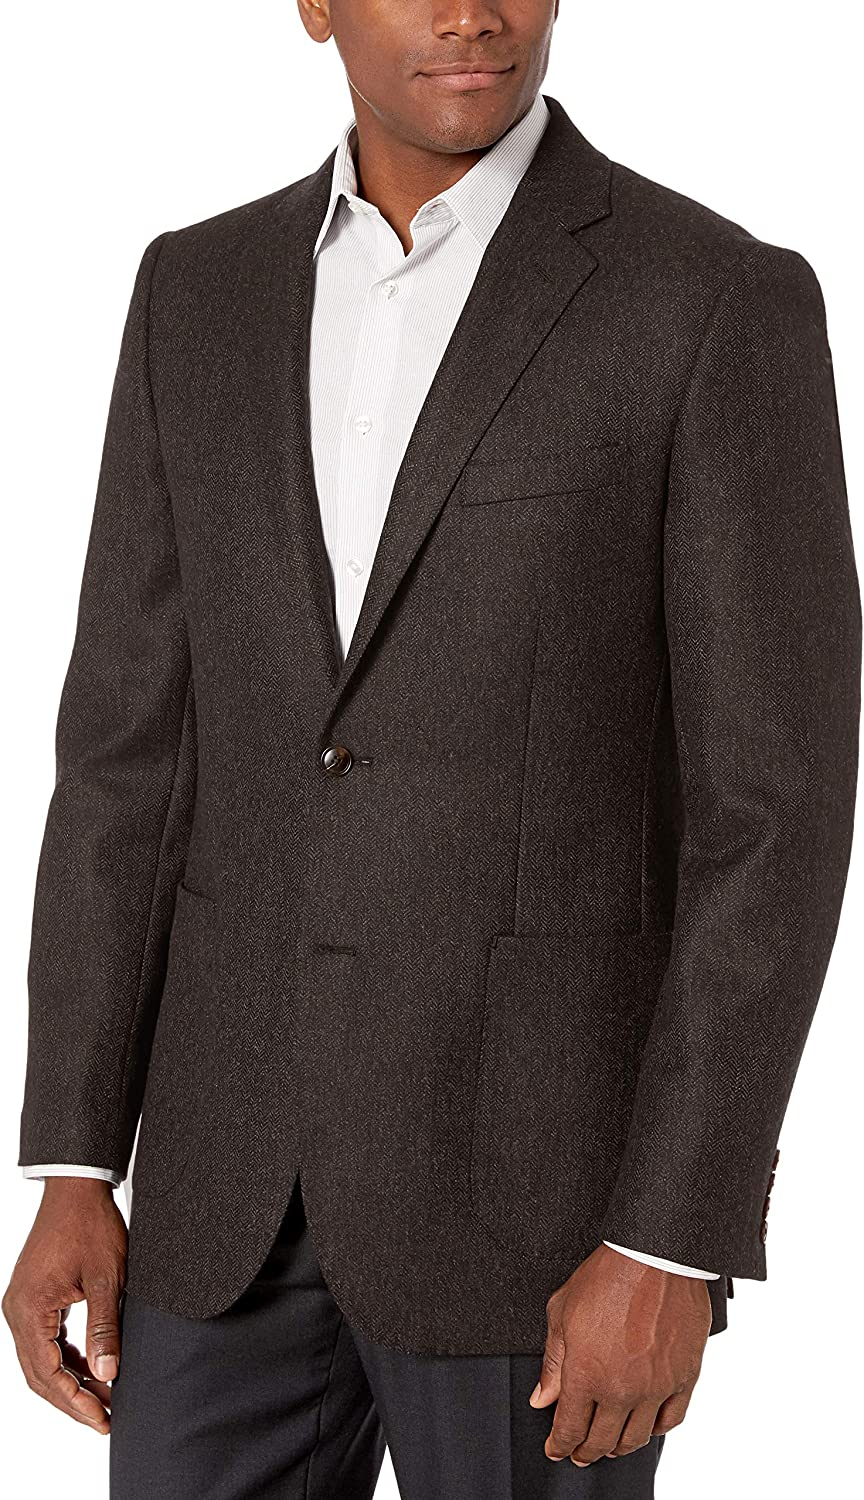 Amazon Brand - Buttoned Down Men's Italian Classic-Fit Wool Luxury Herr Indianapolis Mall